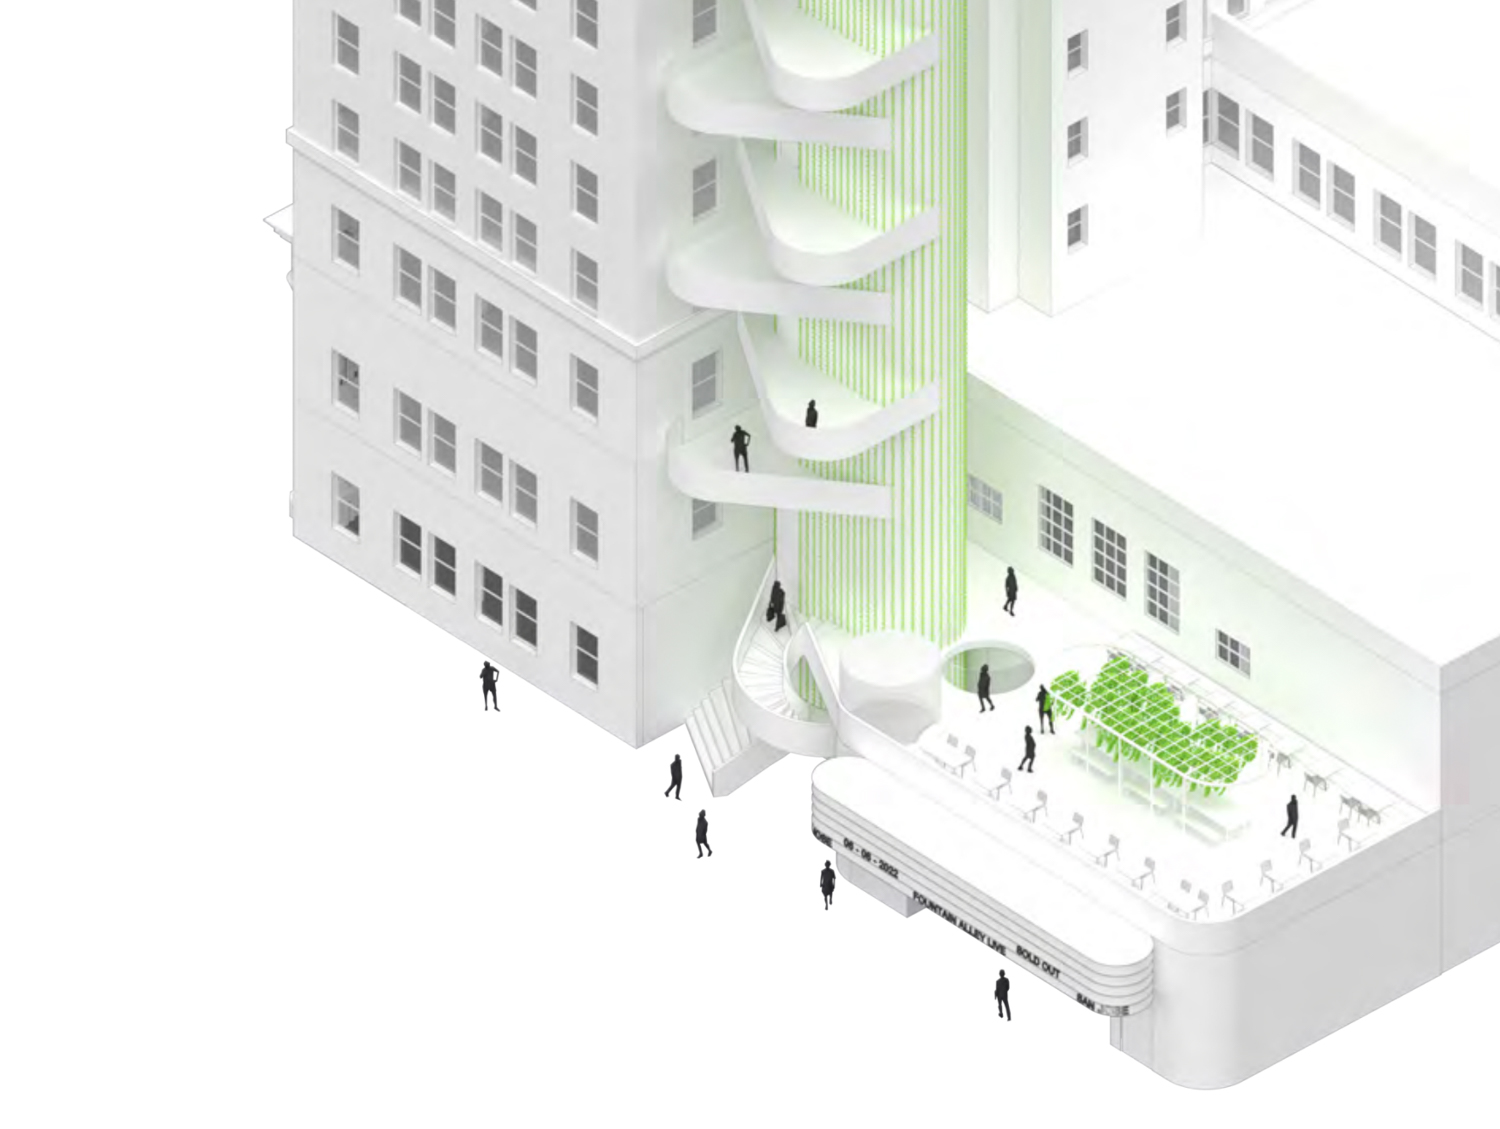 Bank of Italy adjoining fountain alley, rendering by Bjarke Ingels Group